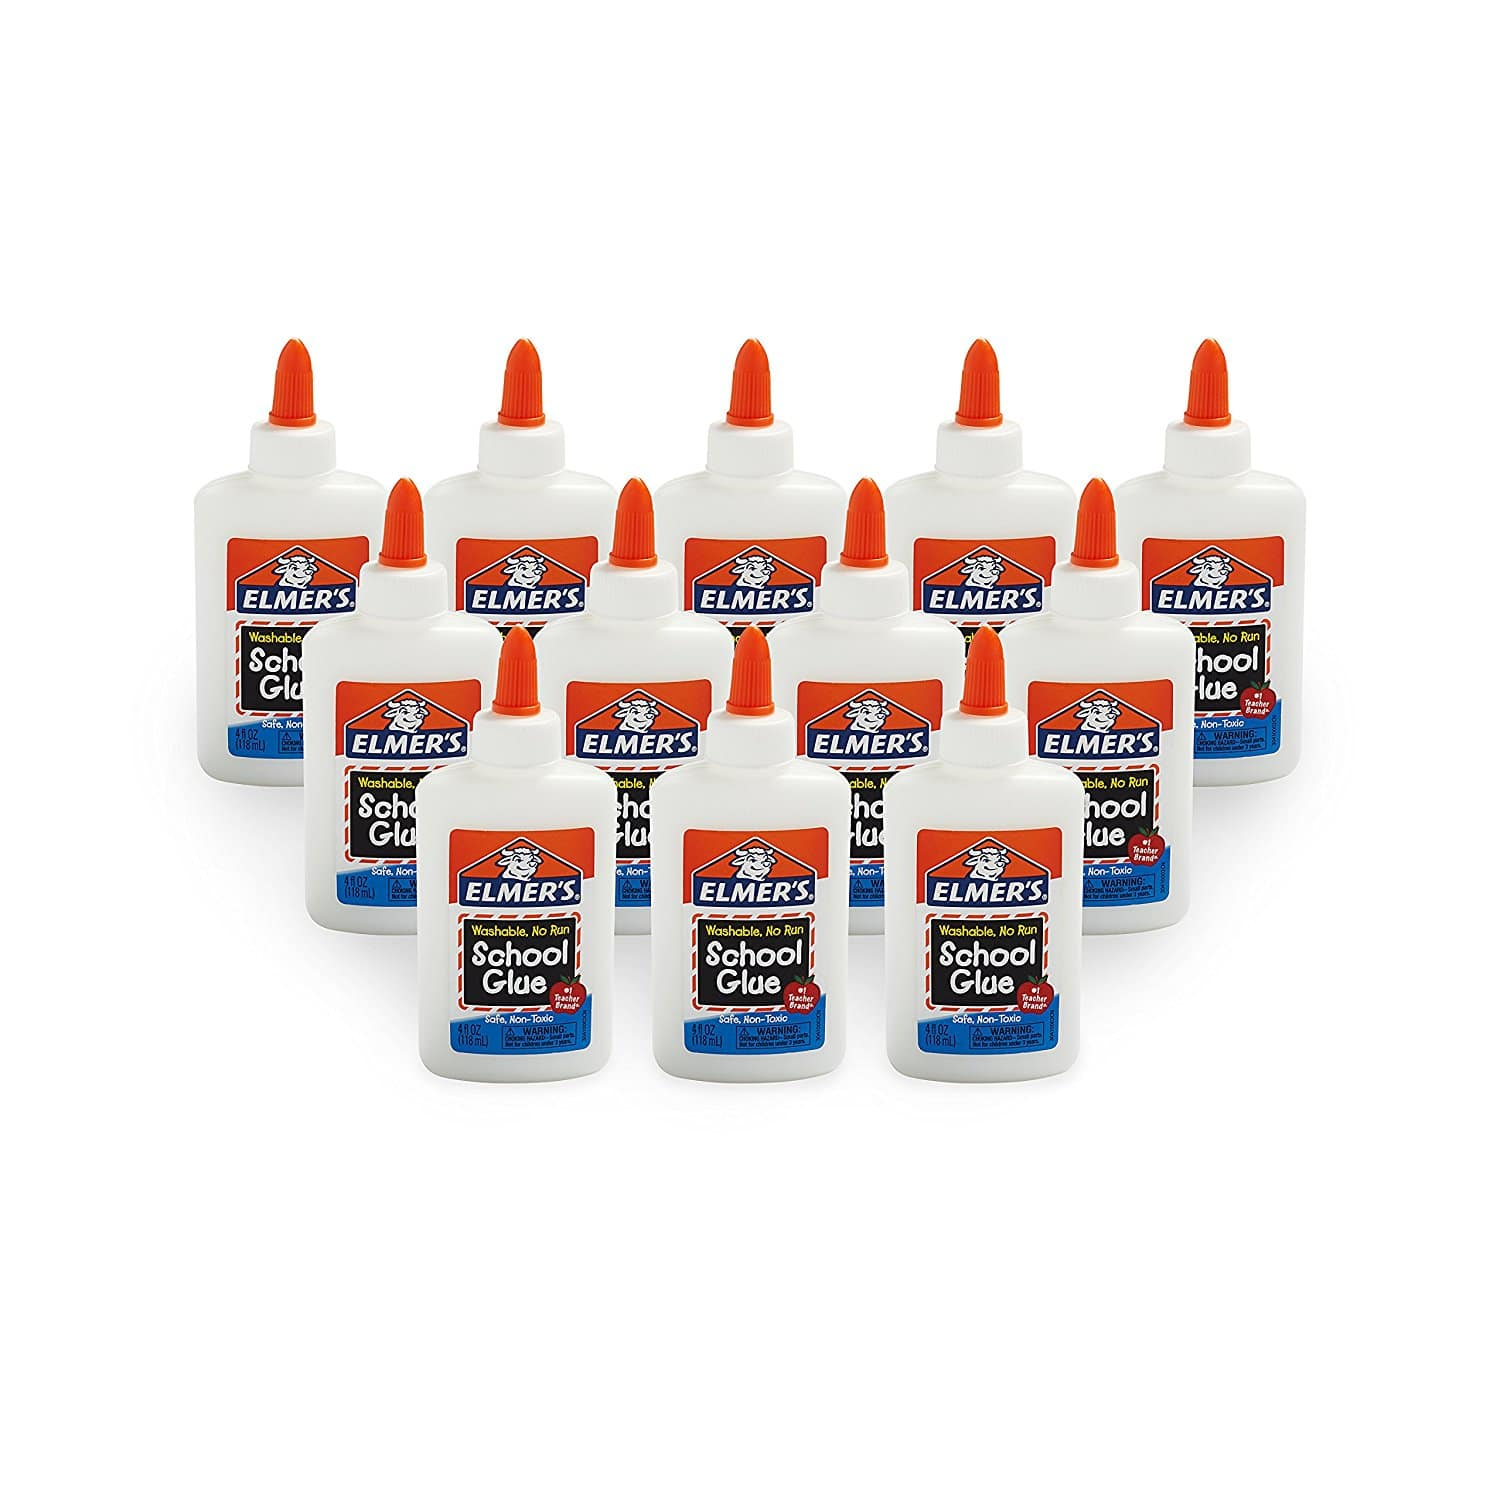 Elmer's School Glue ONLY 81¢/bottle Shipped!